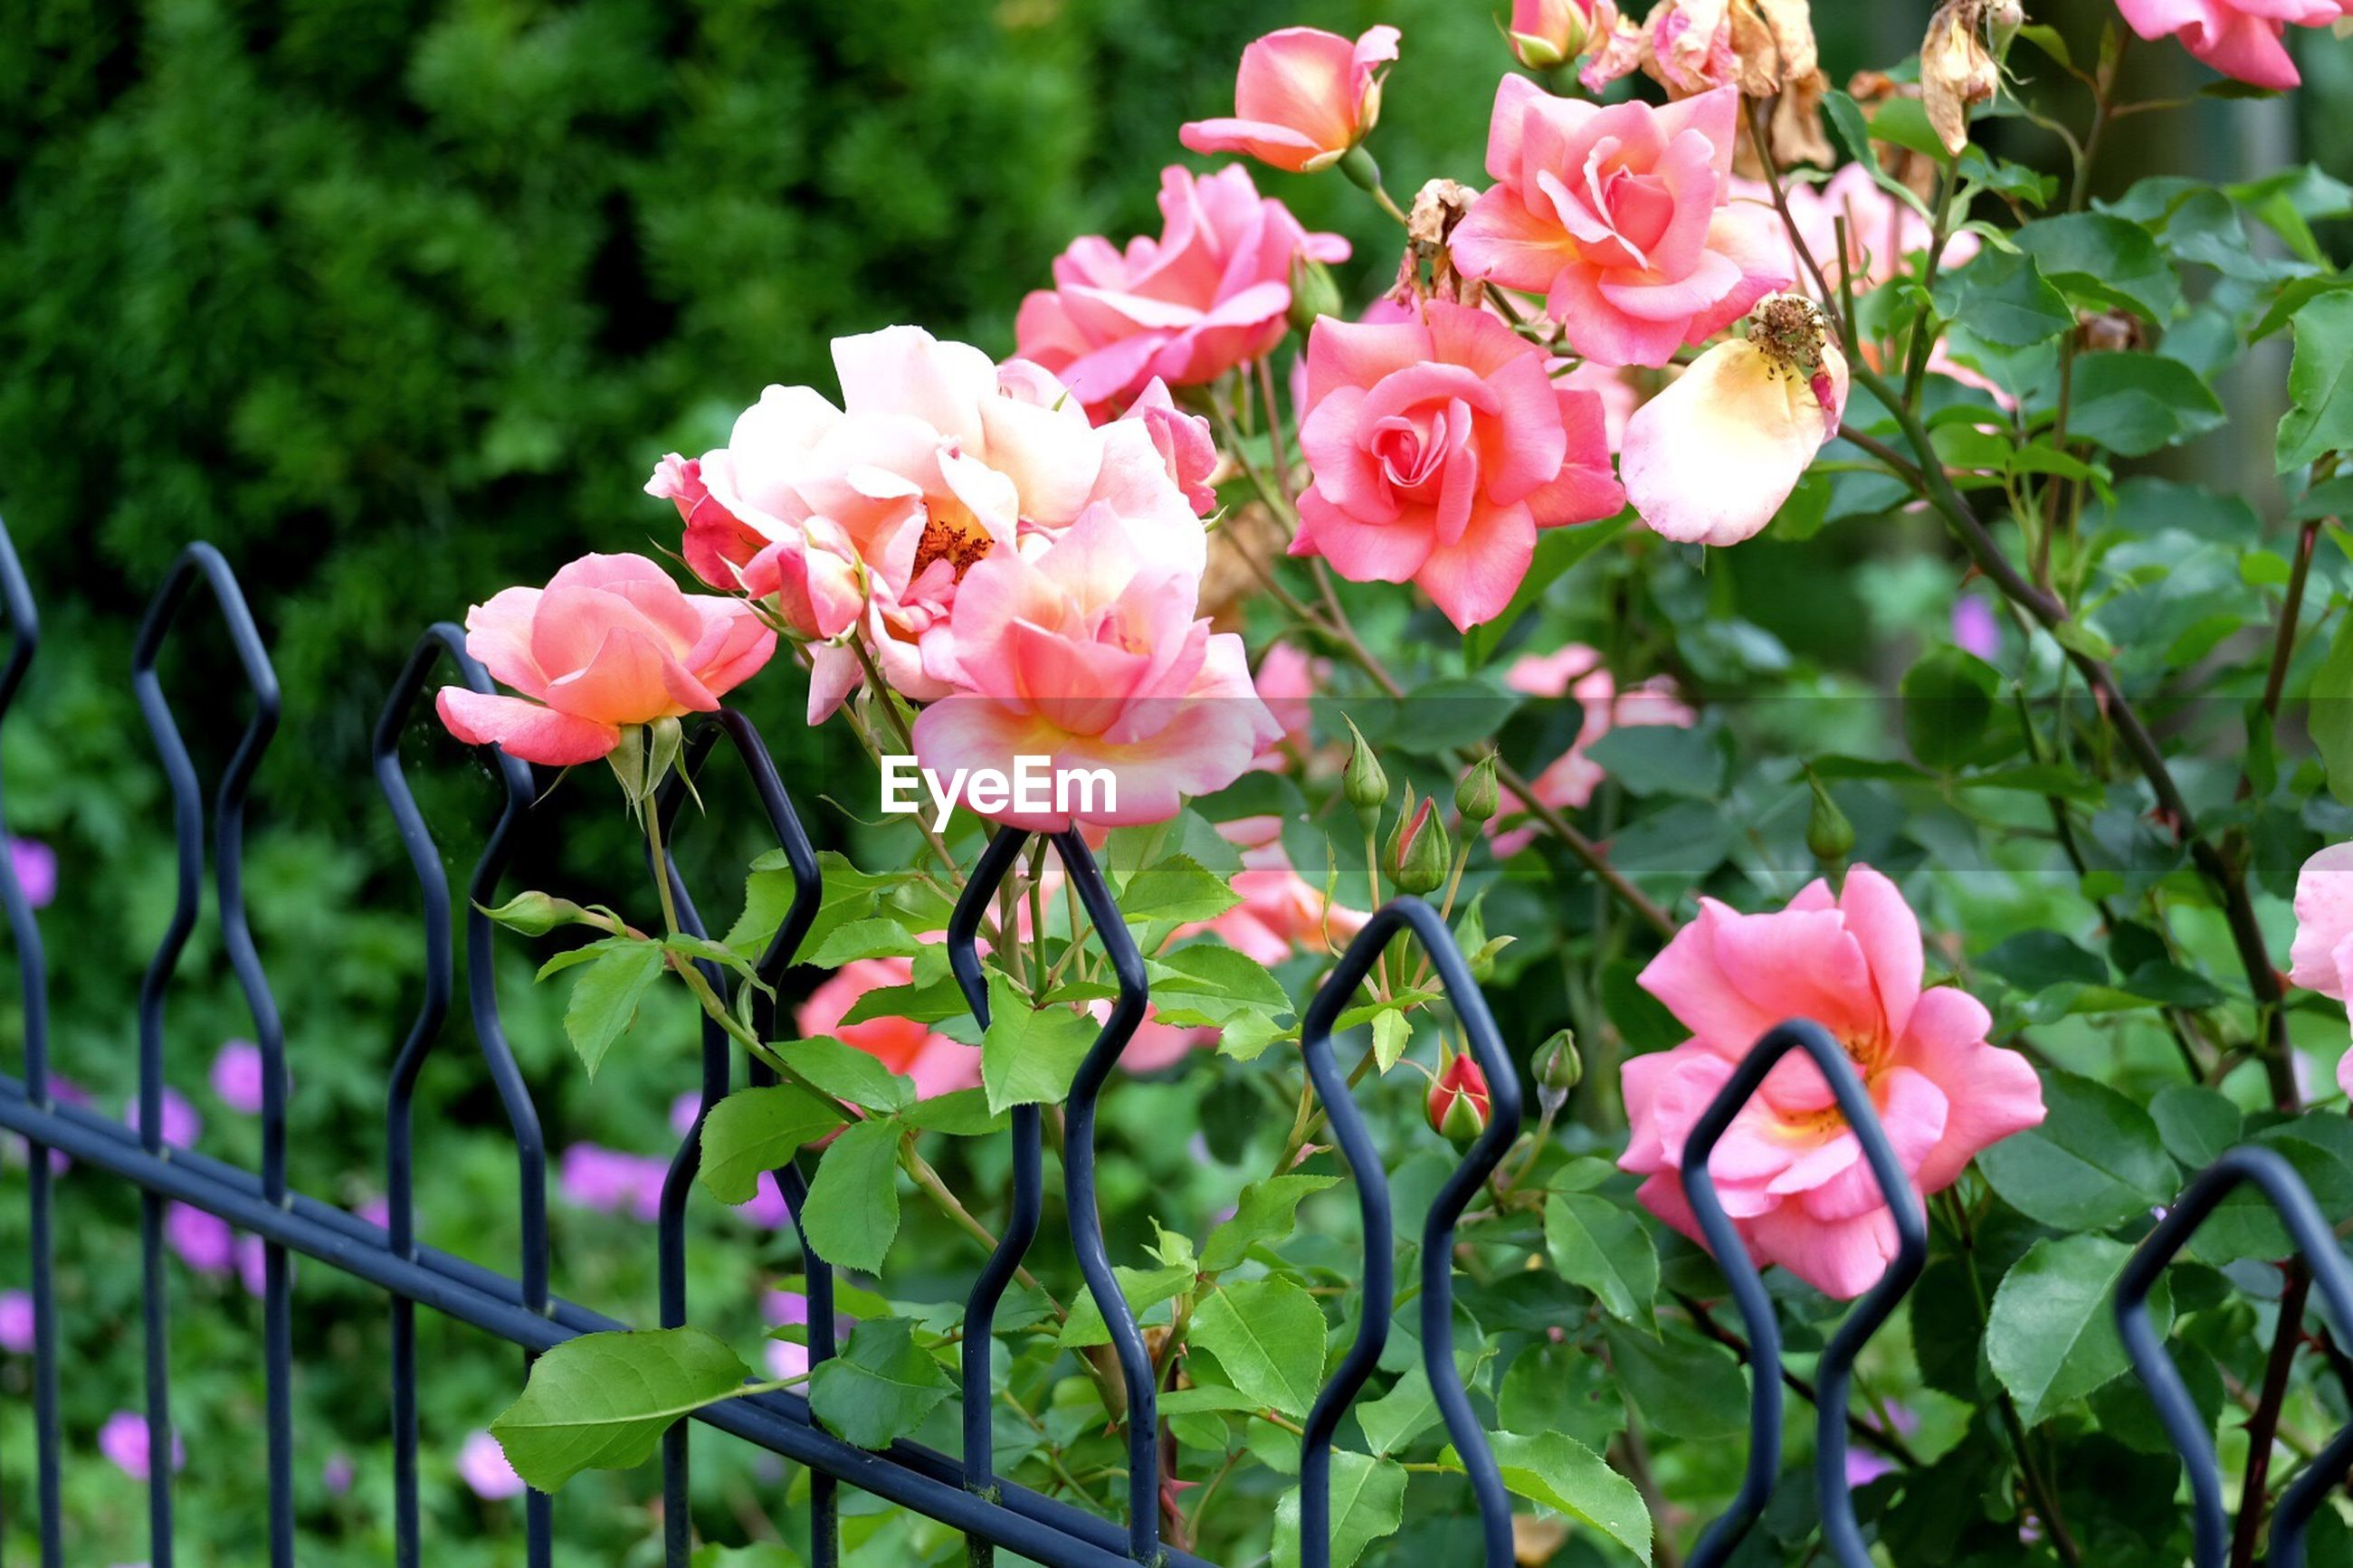 Pink roses blooming in park